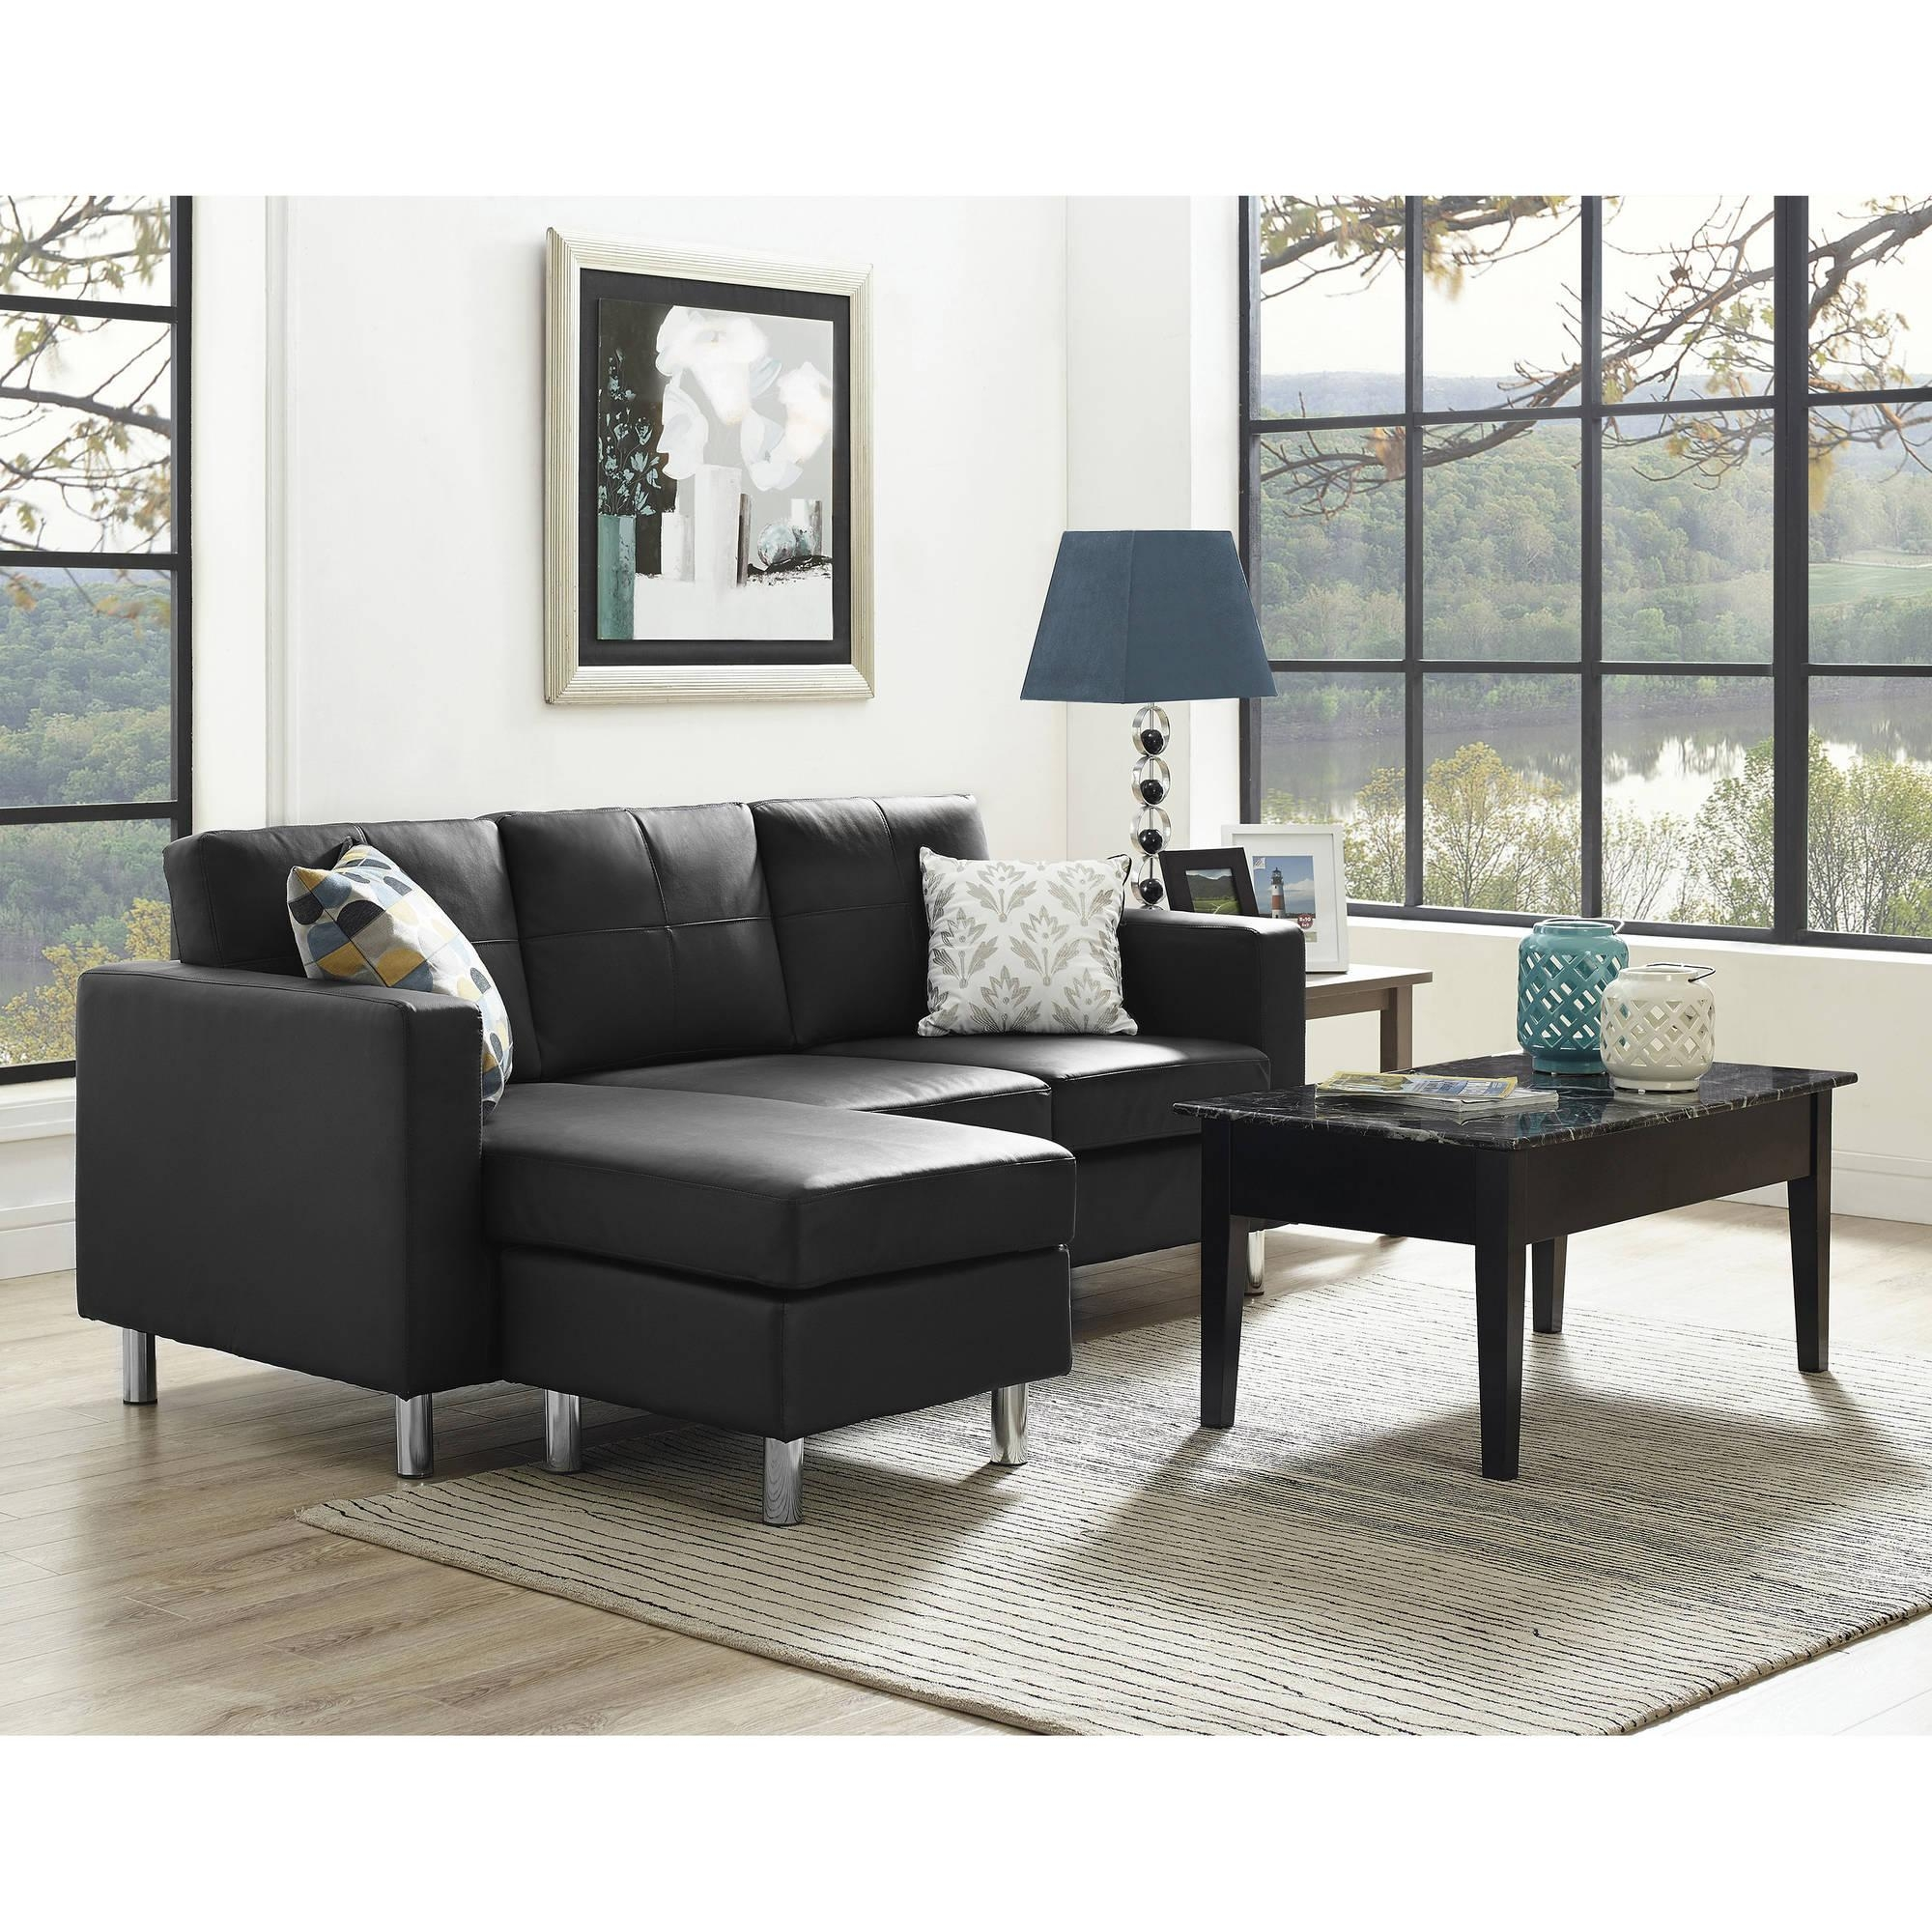 Dorel Living Small Spaces Configurable Sectional Sofa, Multiple With Regard To Sectionals For Apartments (Image 10 of 20)